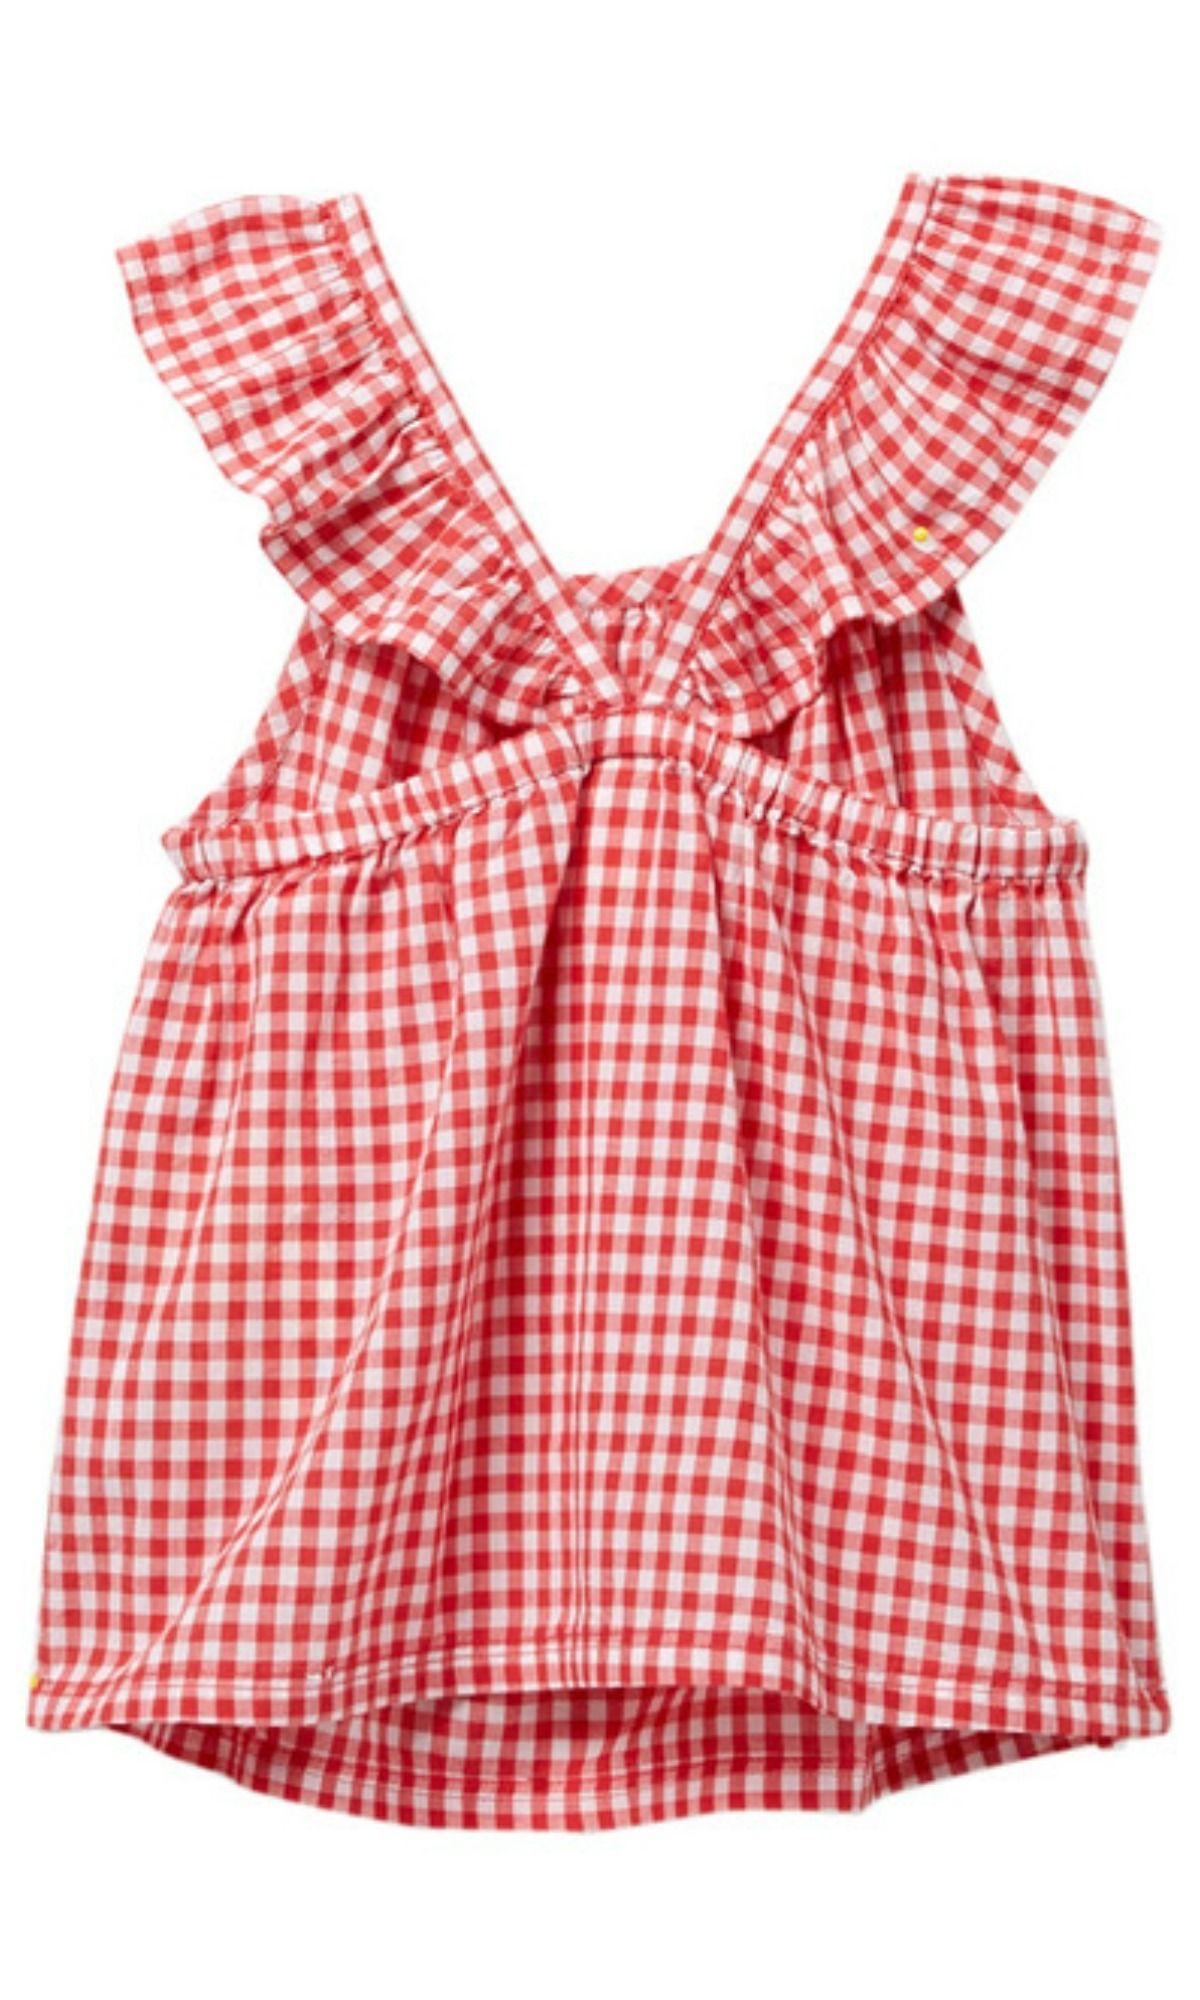 e527c490be11 gingham top for toddlers with a cross back and flutter sleeves #summer  #toddler #affiliate